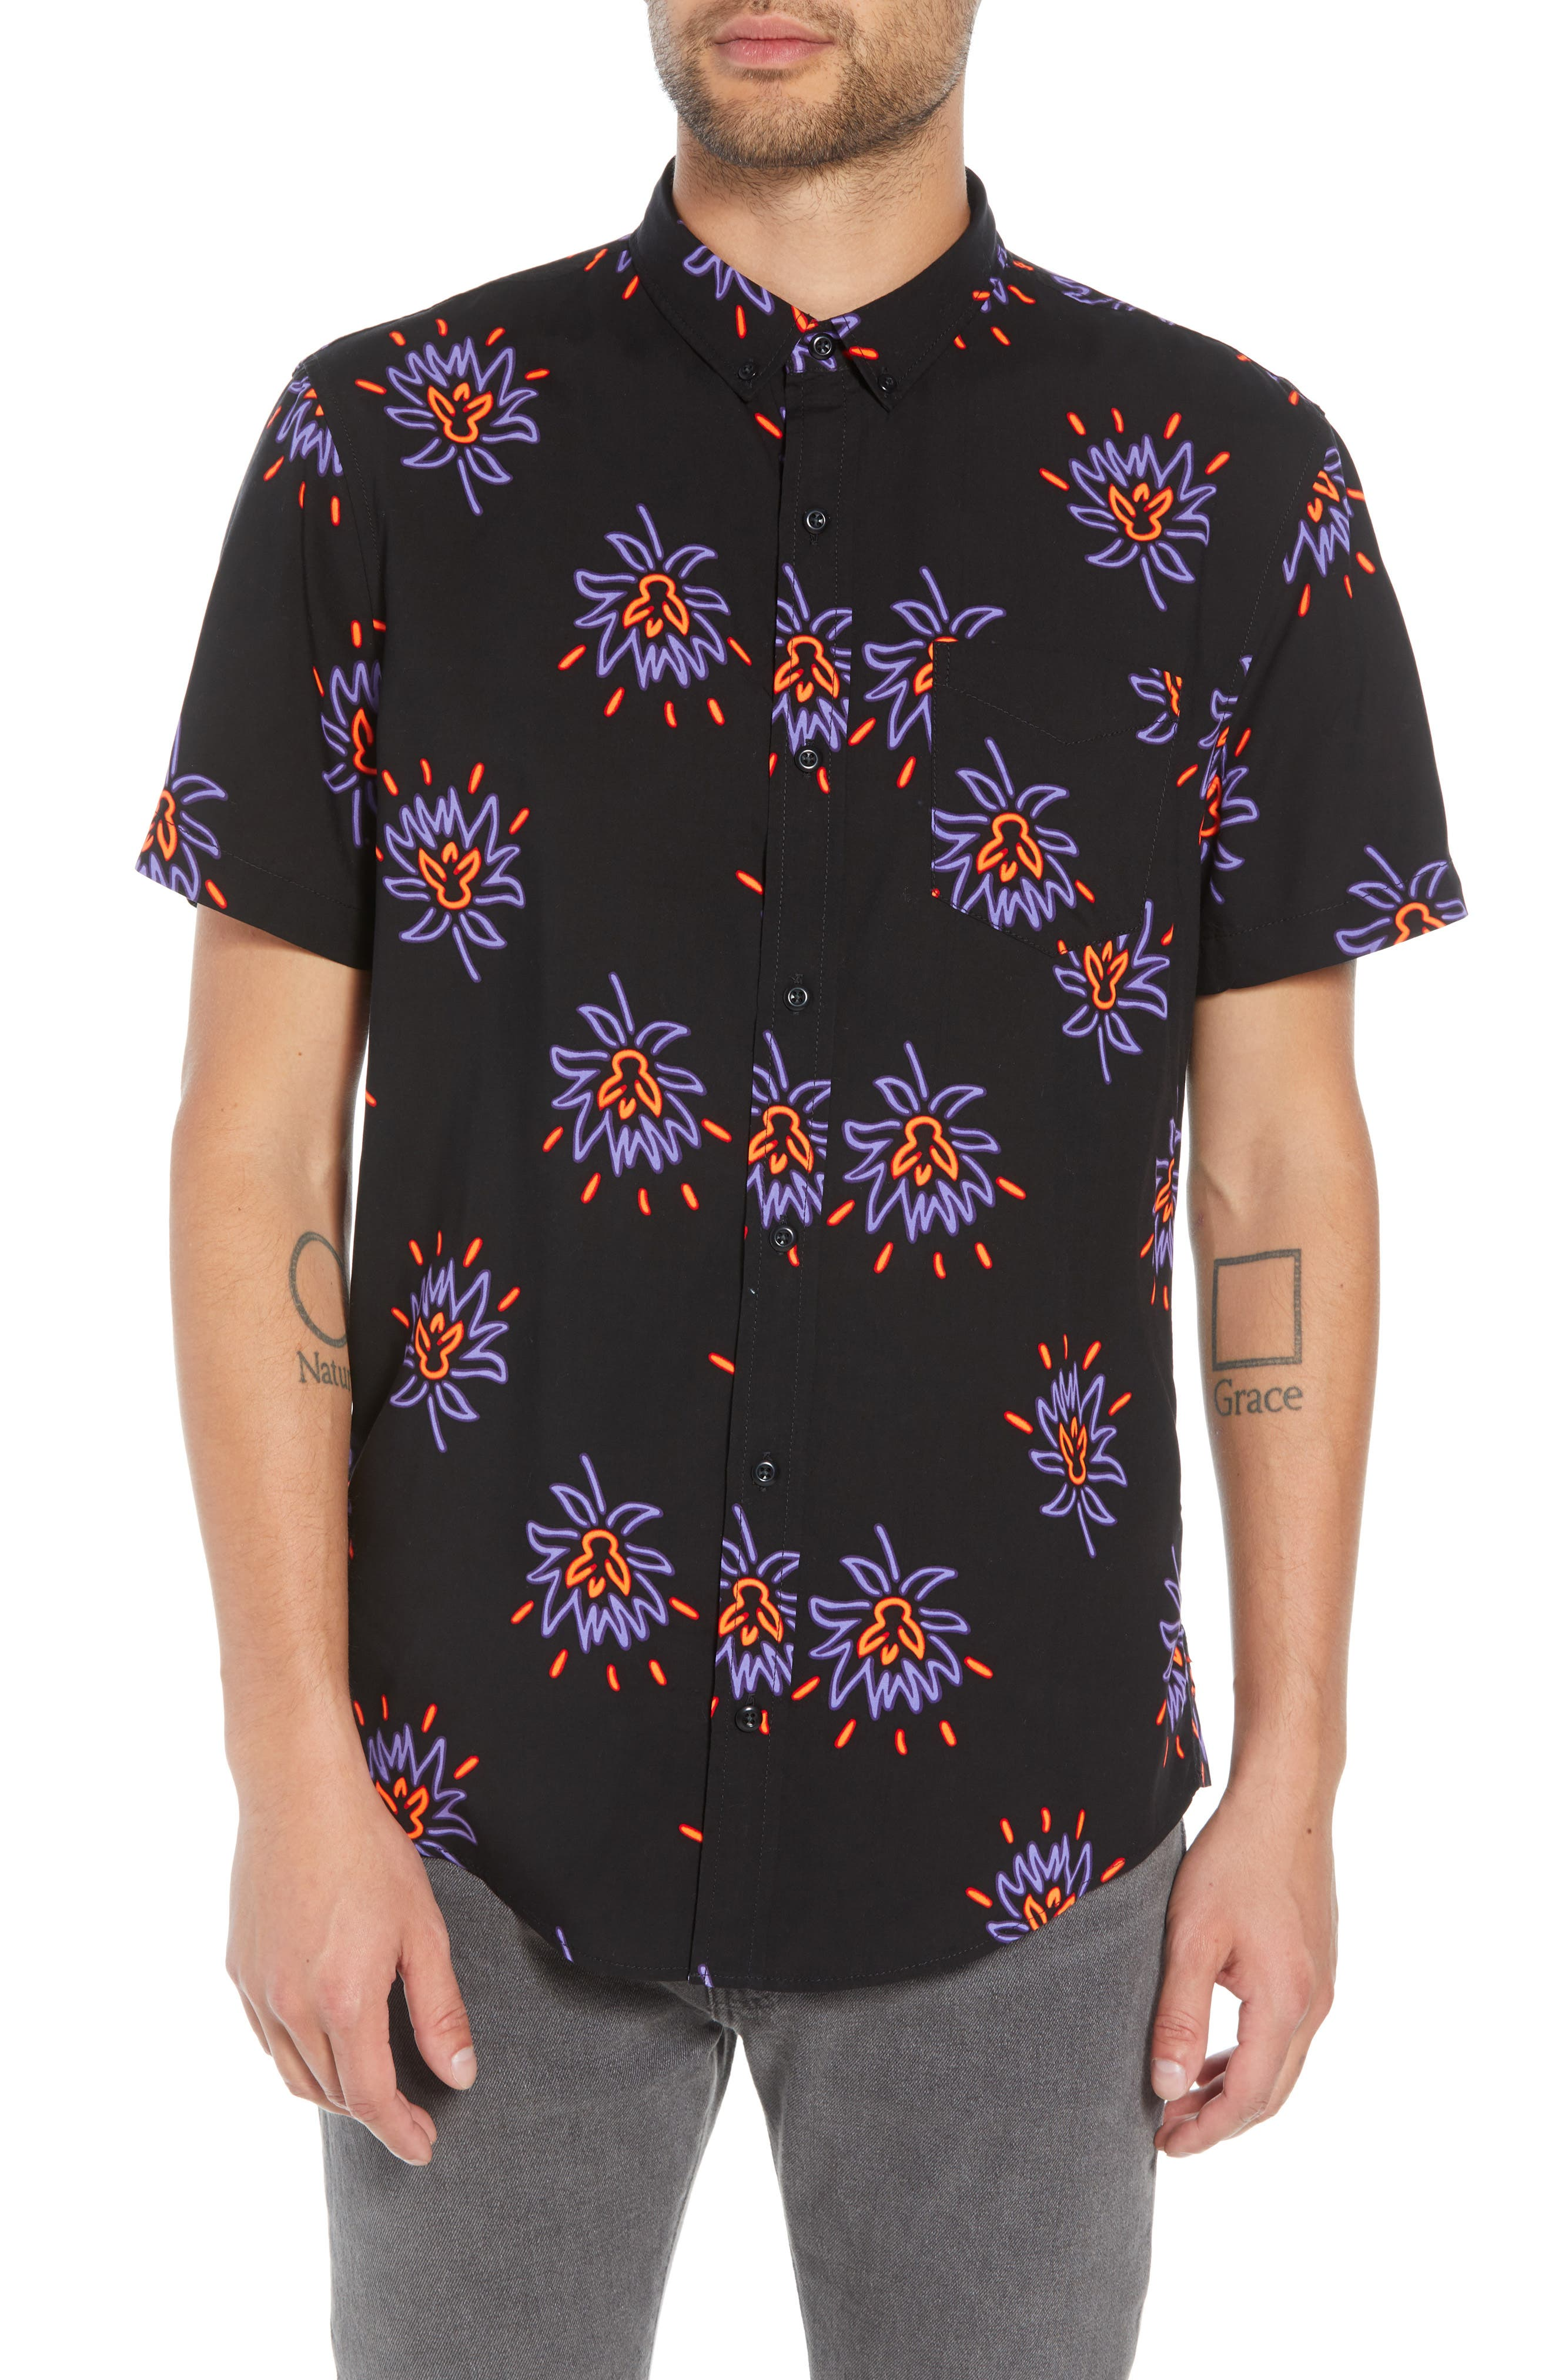 Neon Flower Print Woven Shirt,                             Main thumbnail 1, color,                             BLACK PURPLE NEON FLORAL